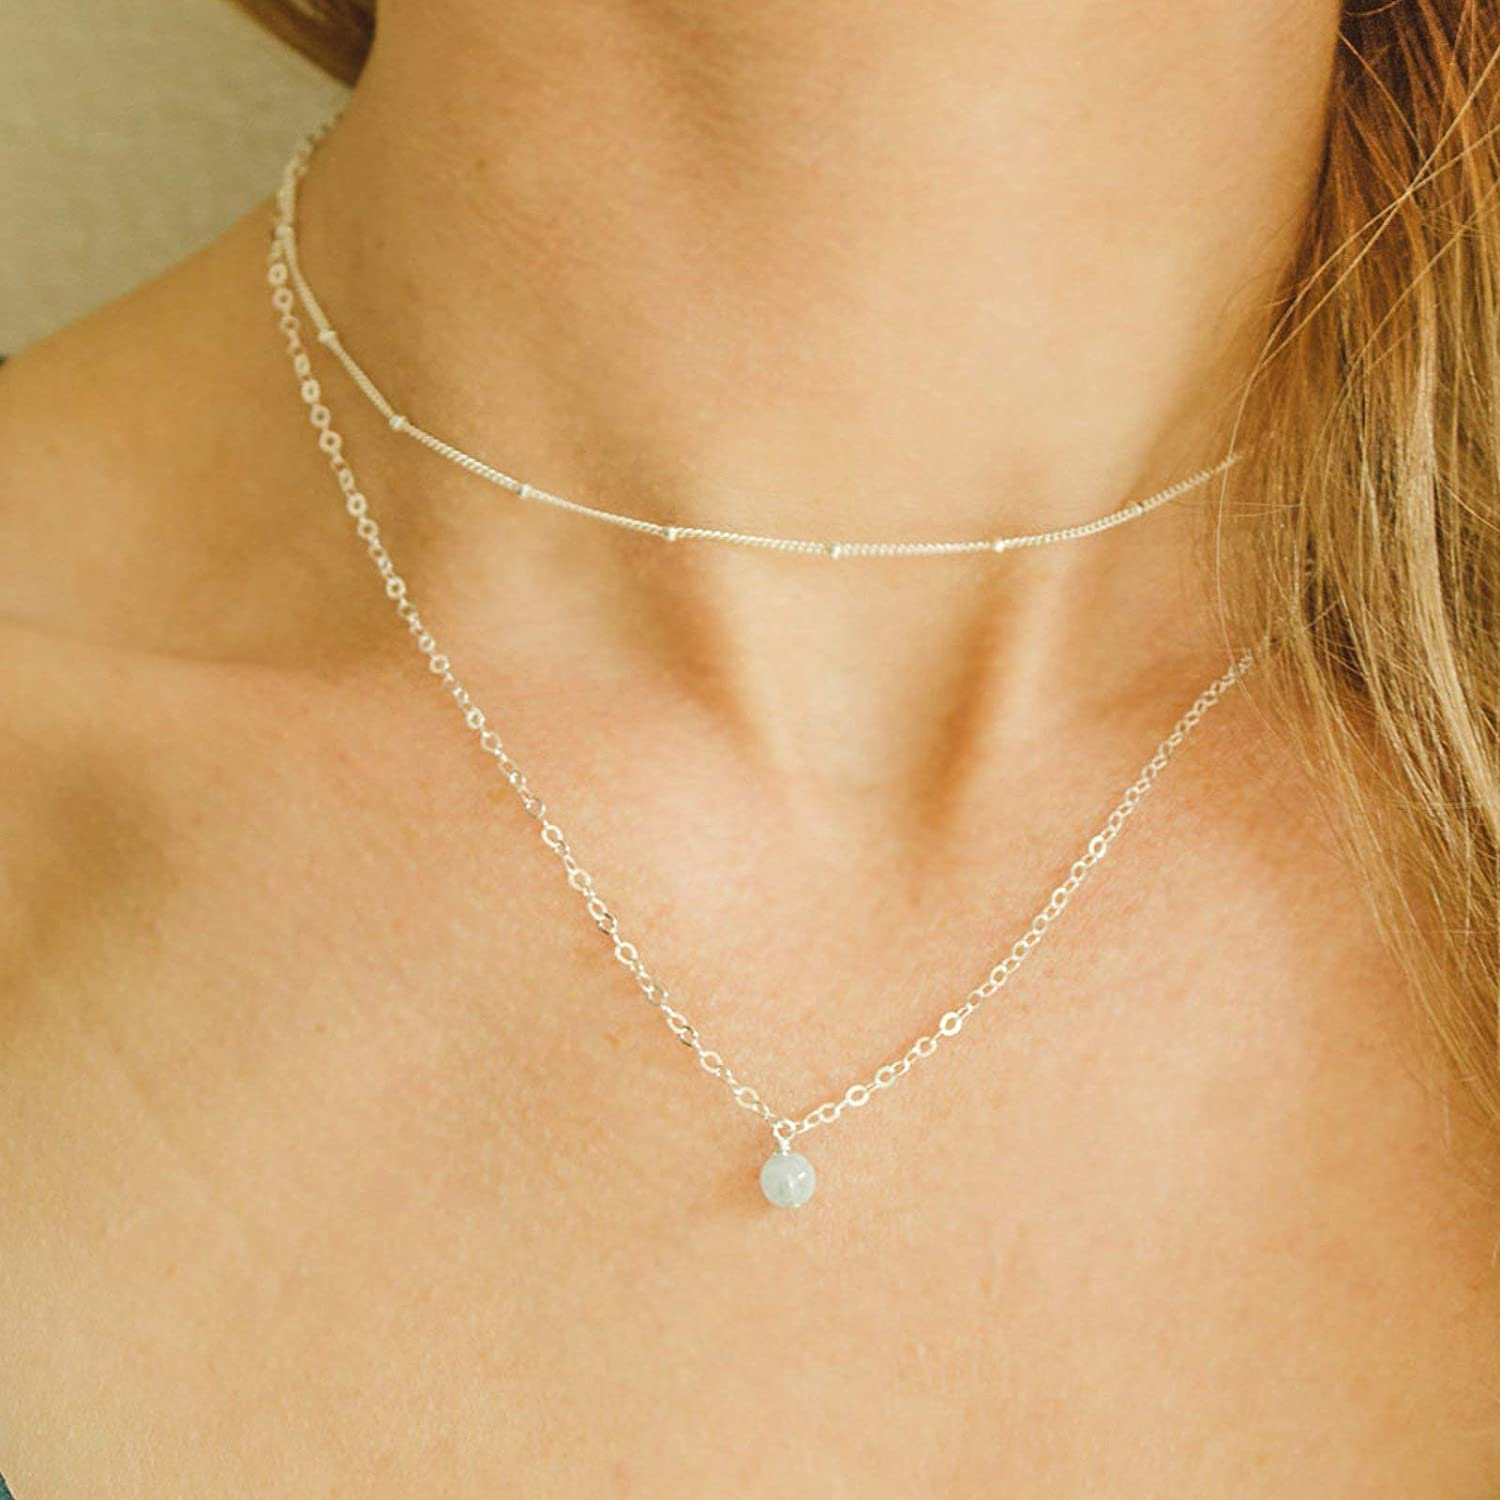 Layered aquamarine choker necklace in 925 sterling silver 12 with 2 adjustable extender March birthstone